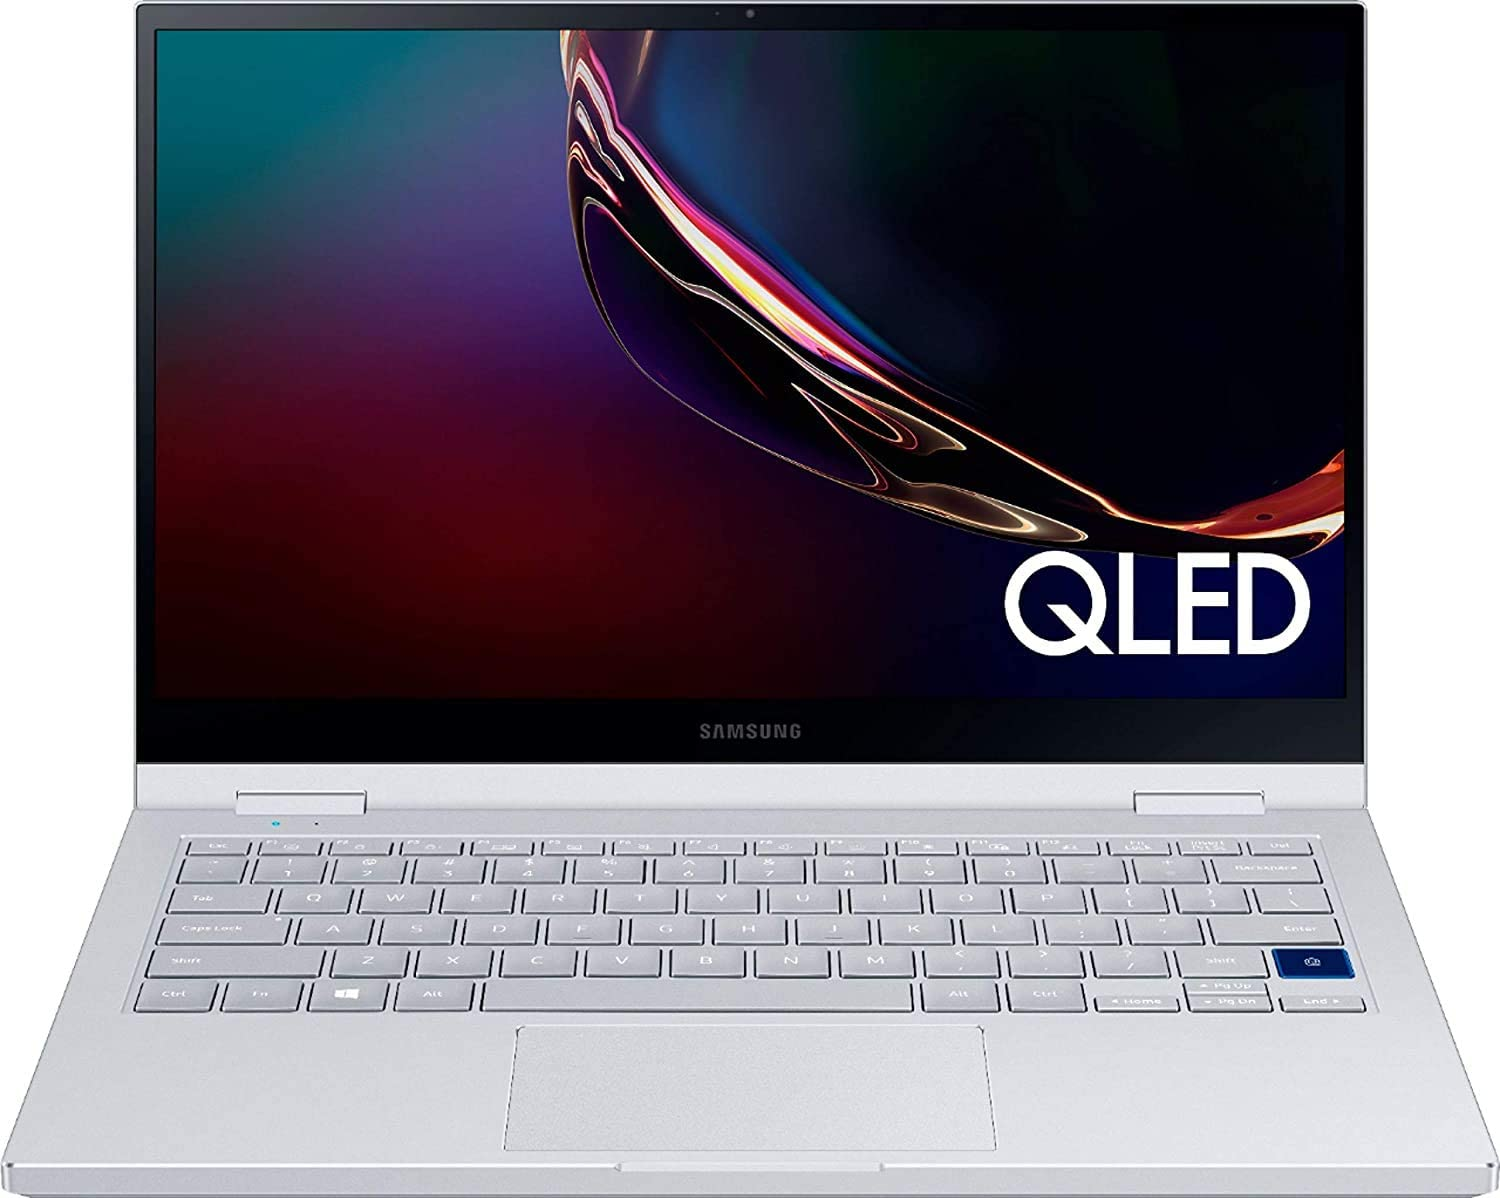 "2020 Samsung Galaxy Book Flex Alpha 2-in-1 13.3"" QLED FHD Touchscreen Laptop Computer, 10th Gen Intel Quard-Core i7-10510U, 12GB DDR4, 1TB PCIe SSD, Windows 10, iPuzzle Mousepad, Online Class Ready"